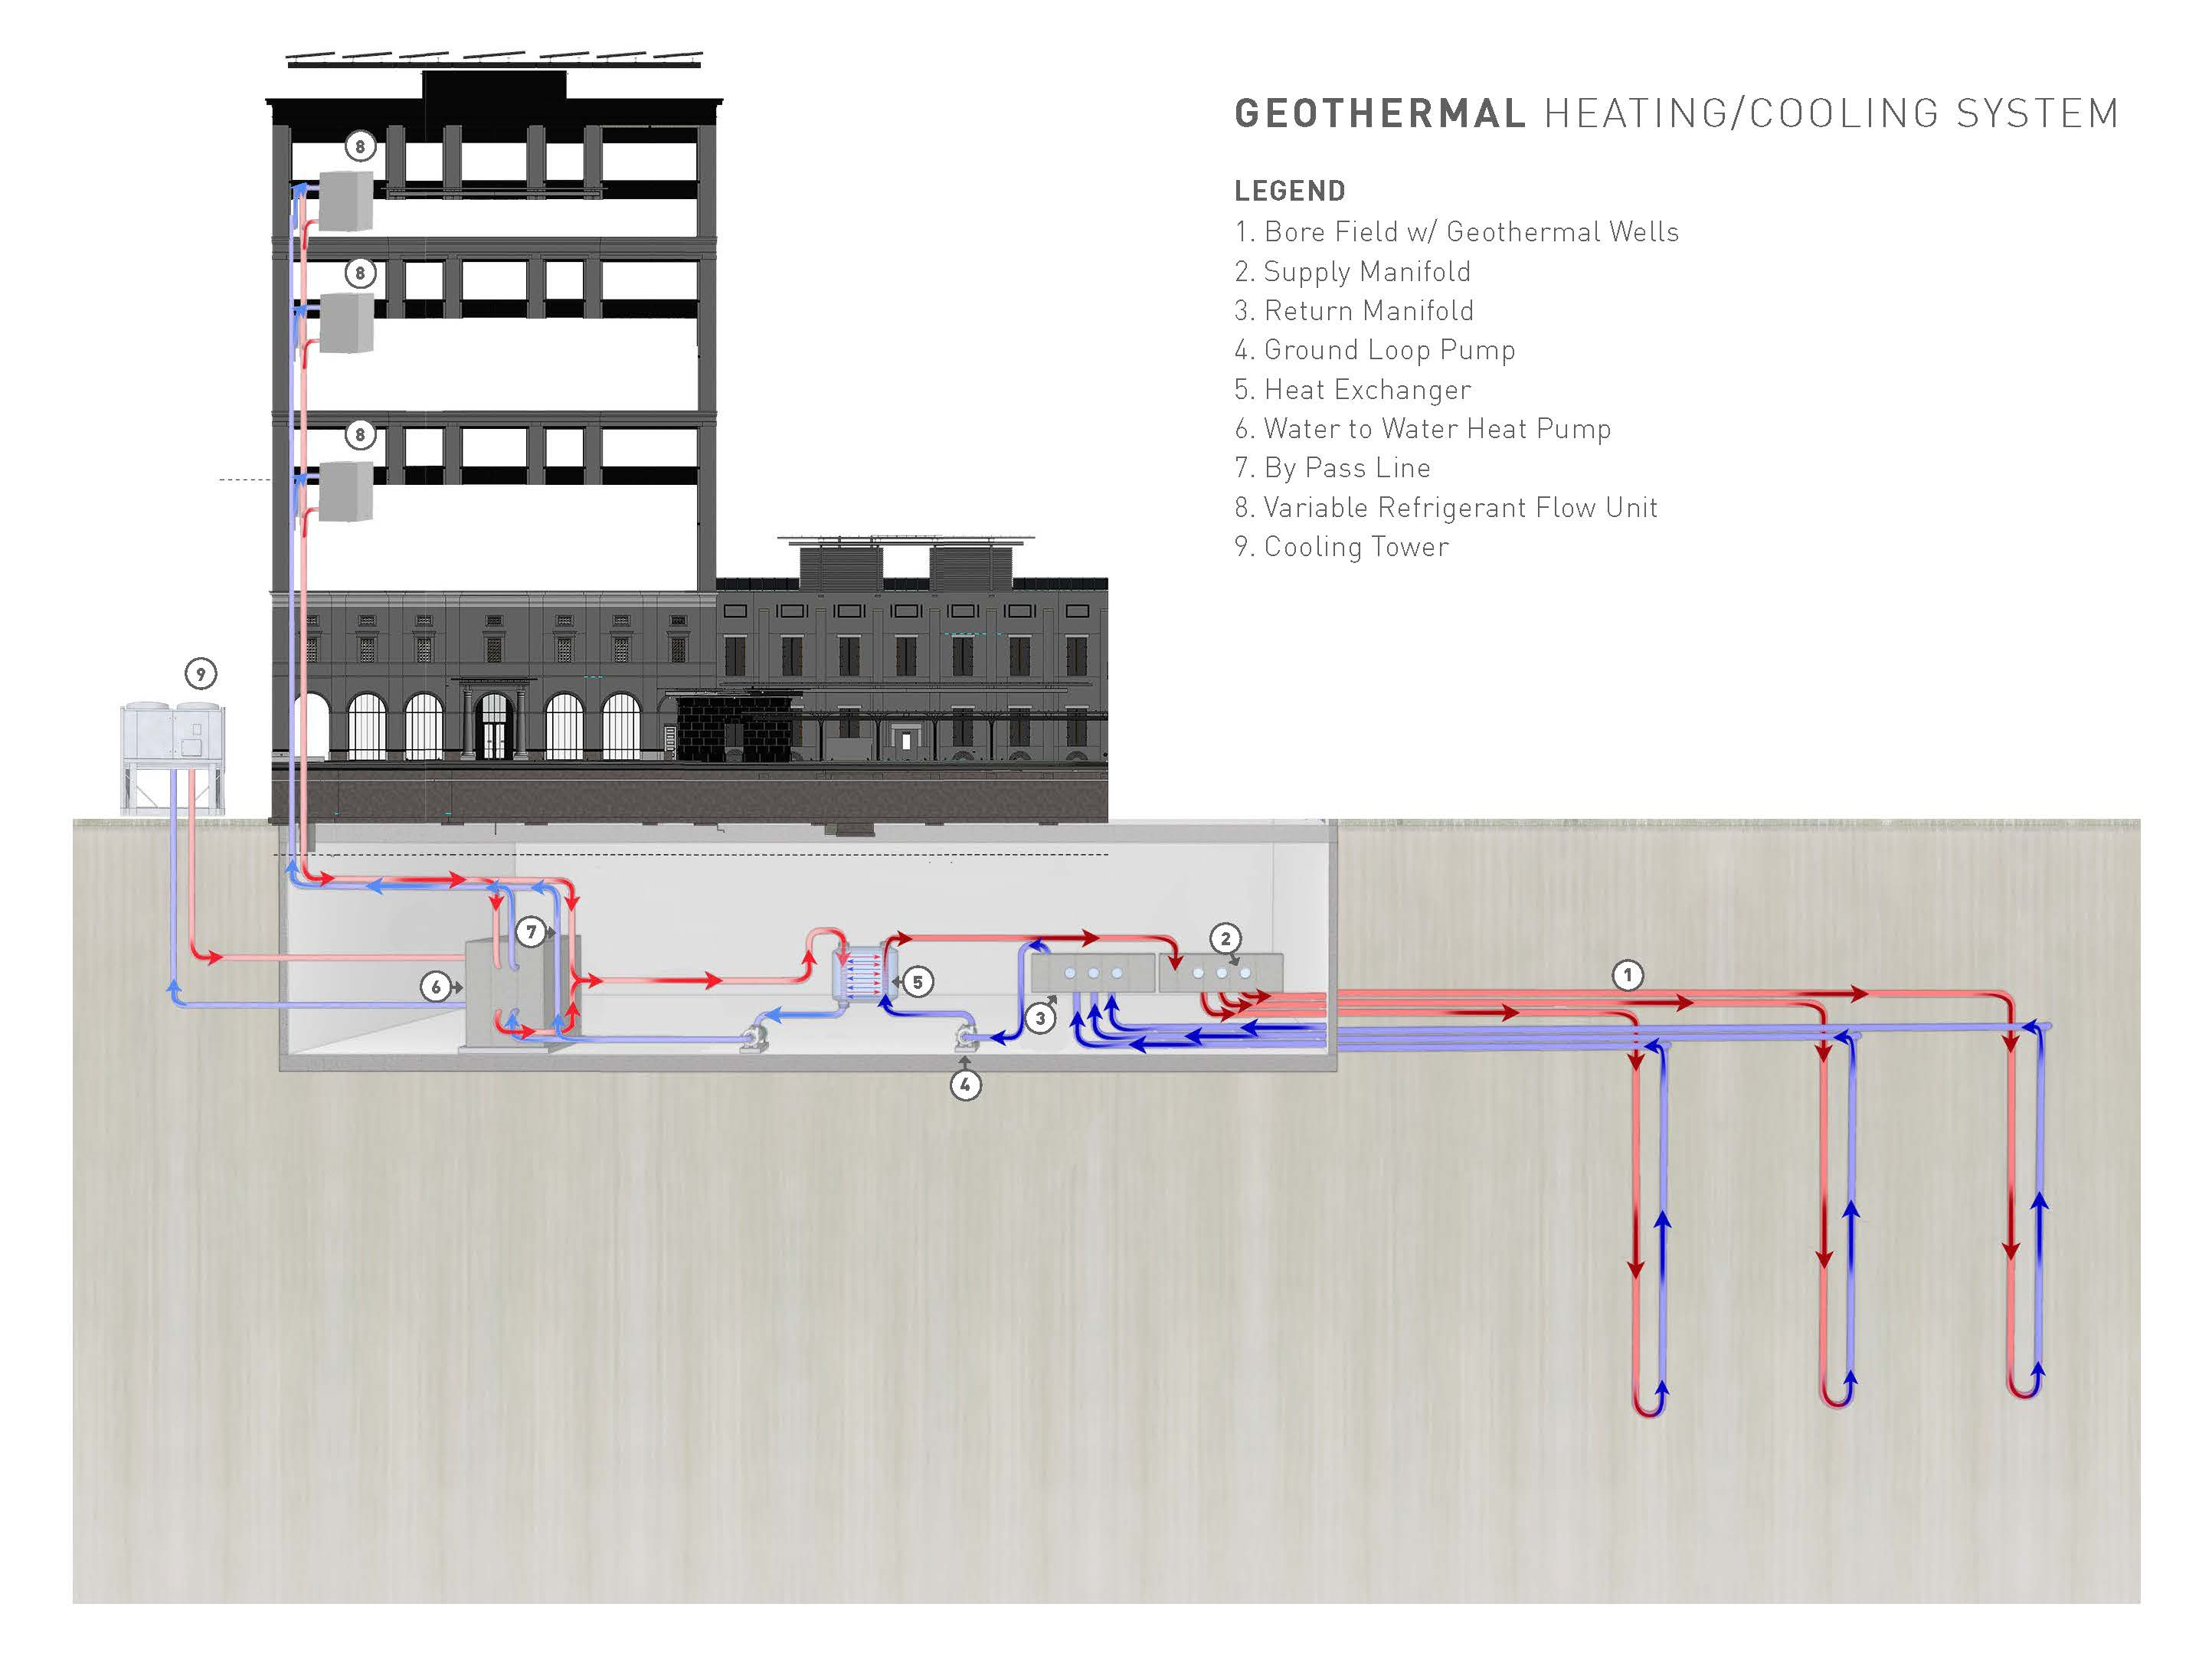 Geothermal Heating and Cooling System of 1703 Broadway